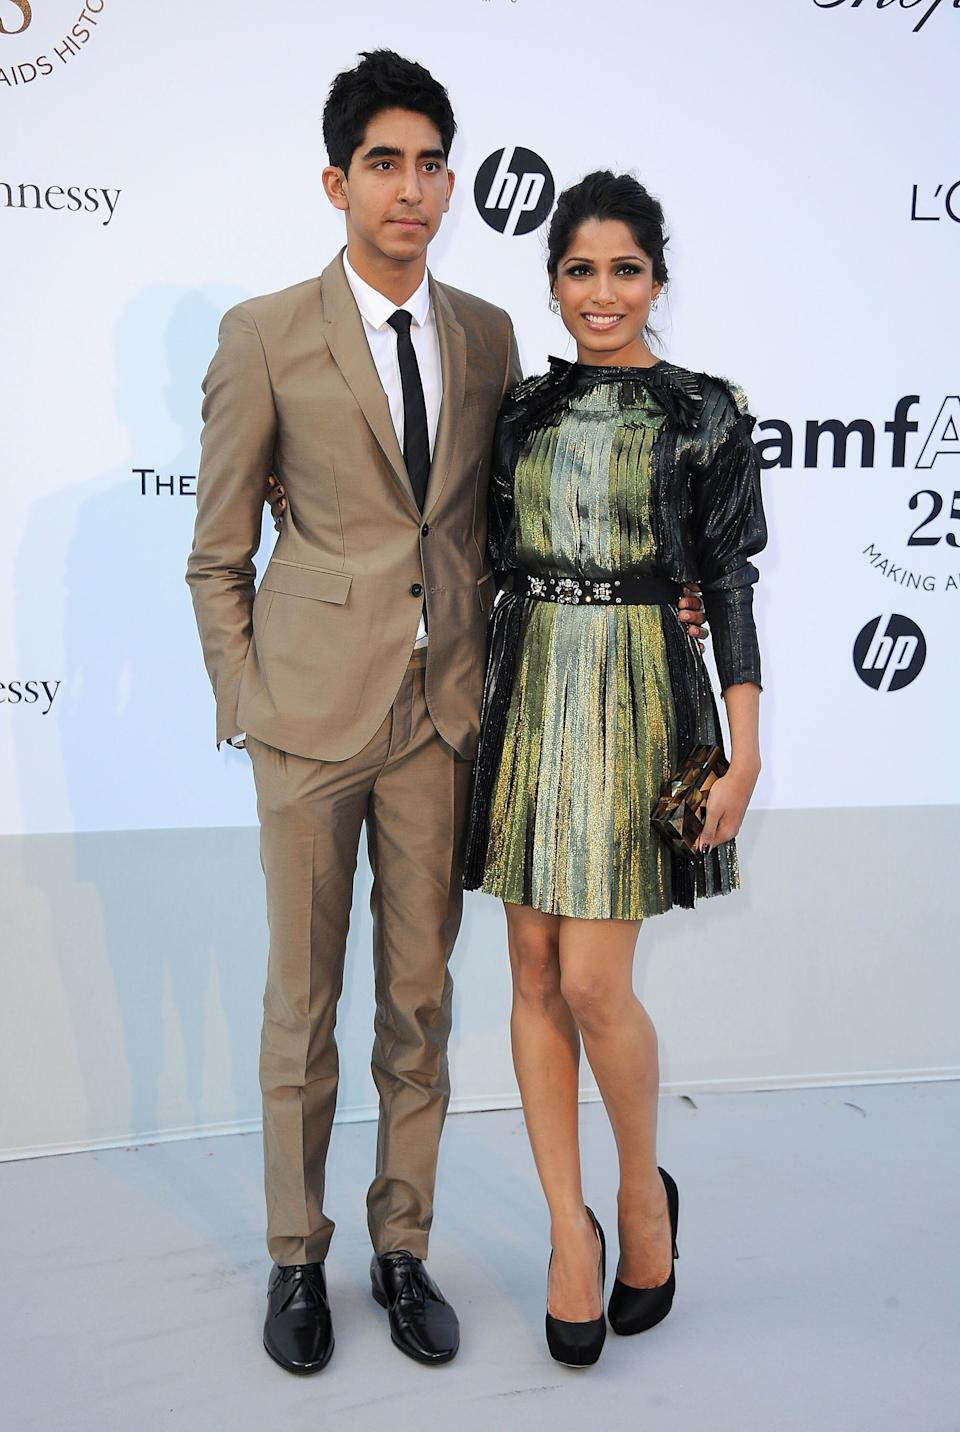 Patel and Pinto at amfAR's Cinema Against AIDS Gala during the 64th Annual Cannes Film Festival at Hotel Du Cap in Antibes, France, on May 19, 2011.